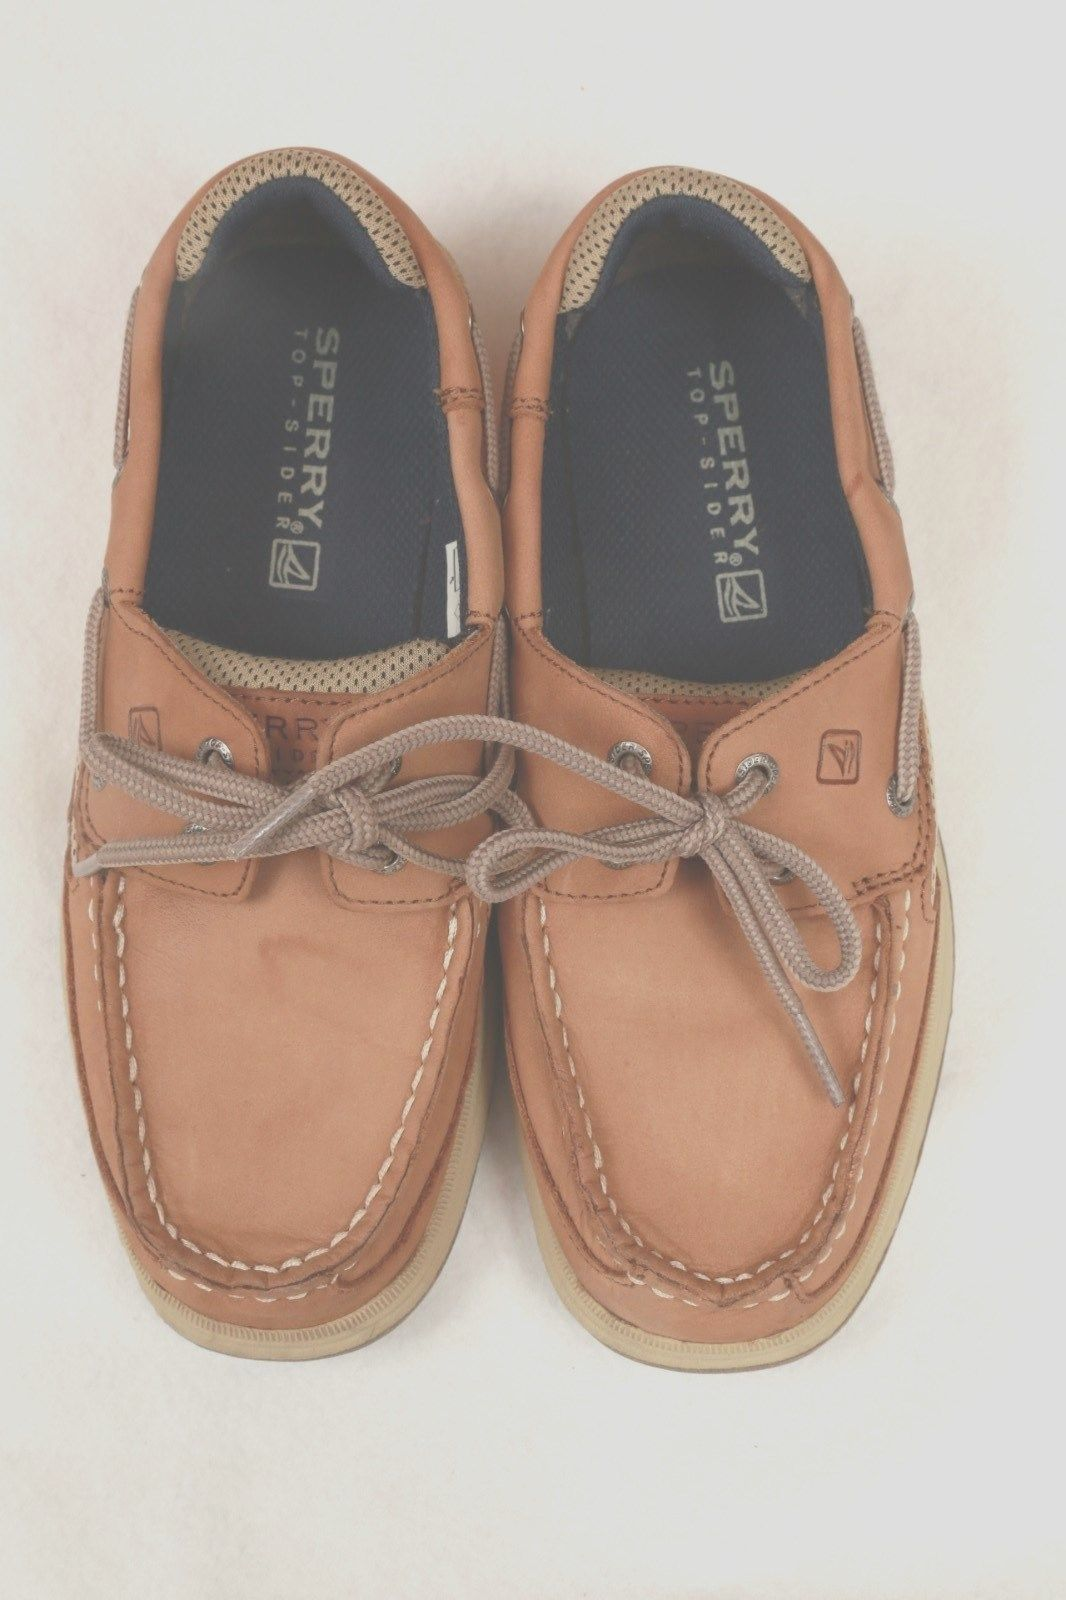 Sperry Top Sider Lanyard Shoes Boys Brown Beige 3.5 M Leather Laced MINT